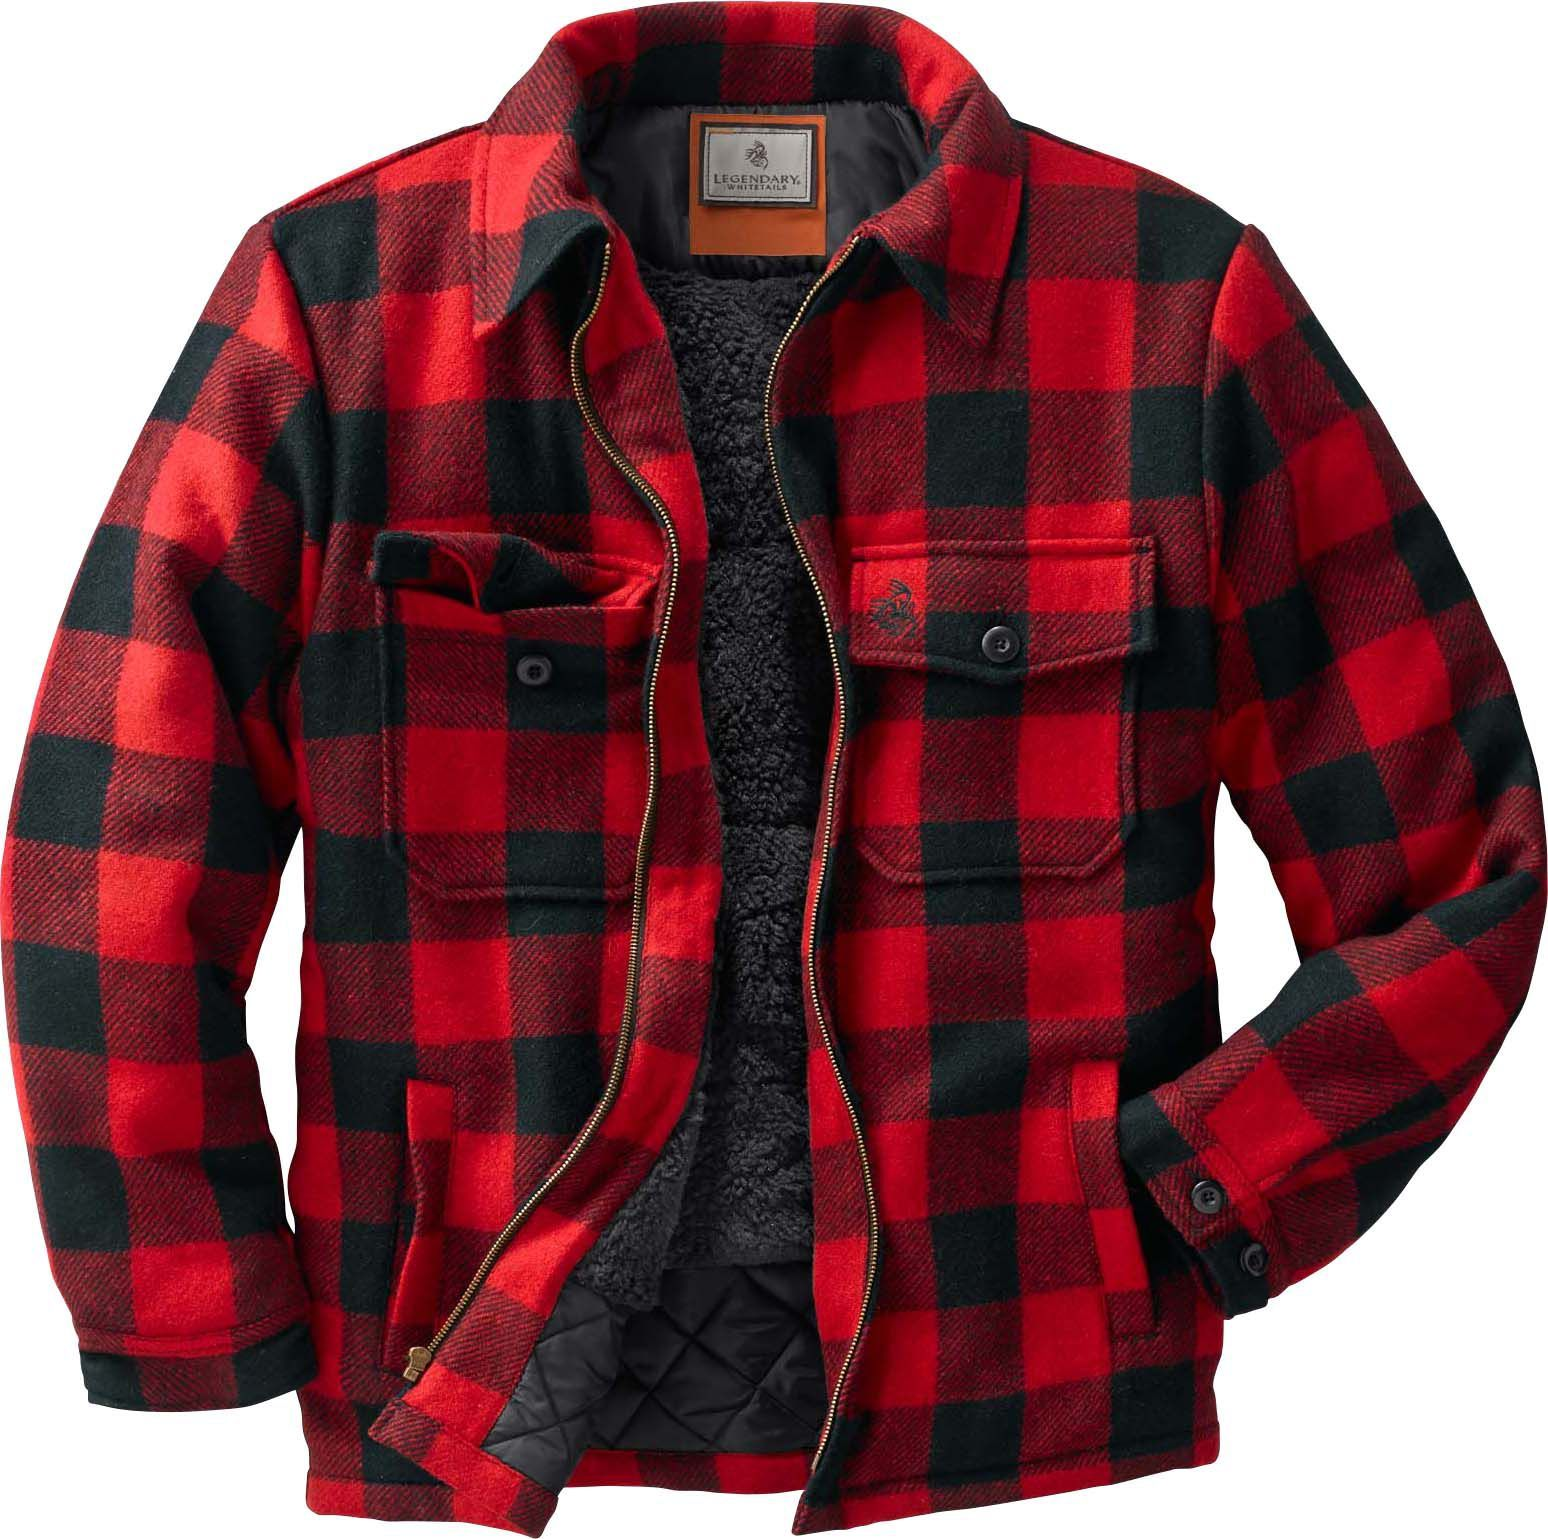 Men s Buffalo Plaid Outdoorsman Jacket at Legendary Whitetails ... d1f36dfd419